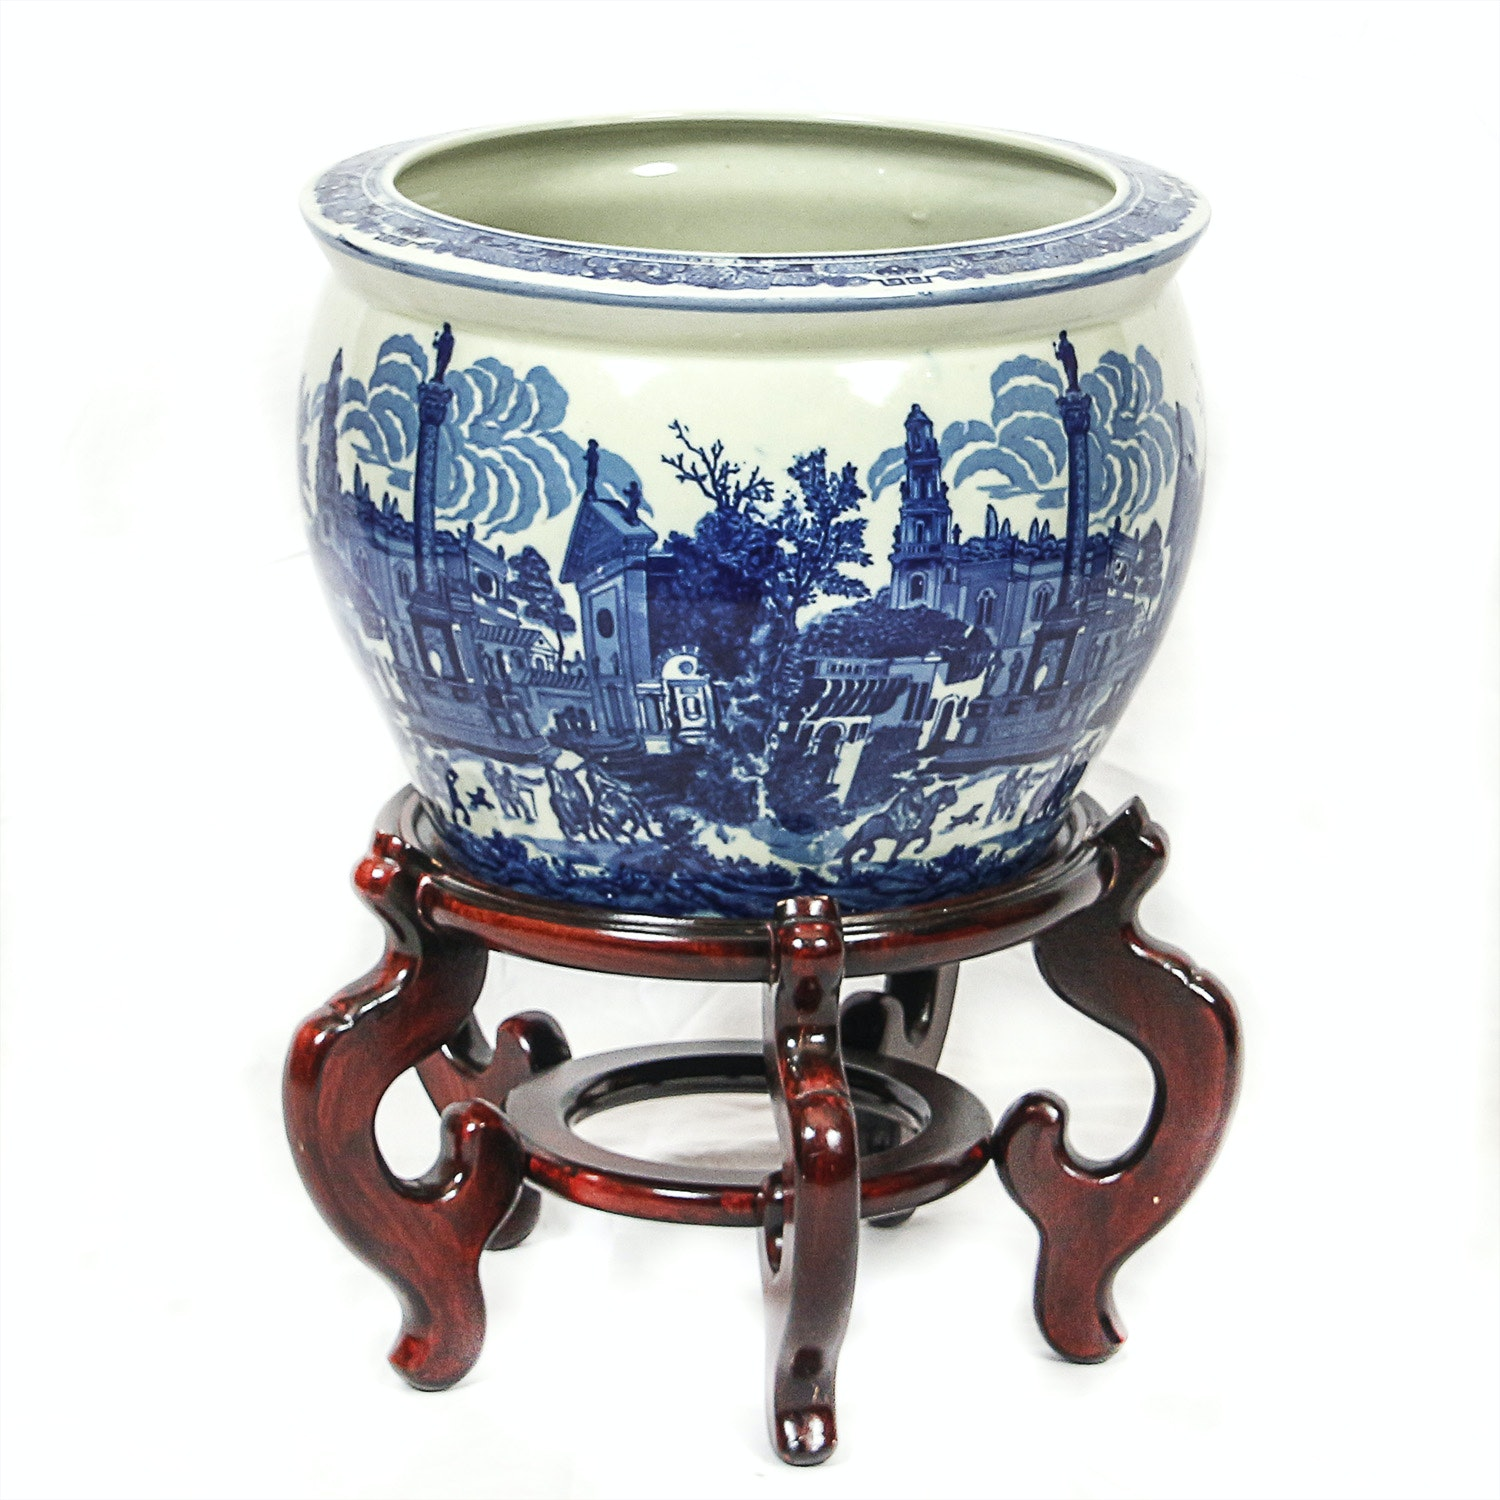 Asian Inspired Blue and White Transferware Porcelain Planter with Wooden Stand